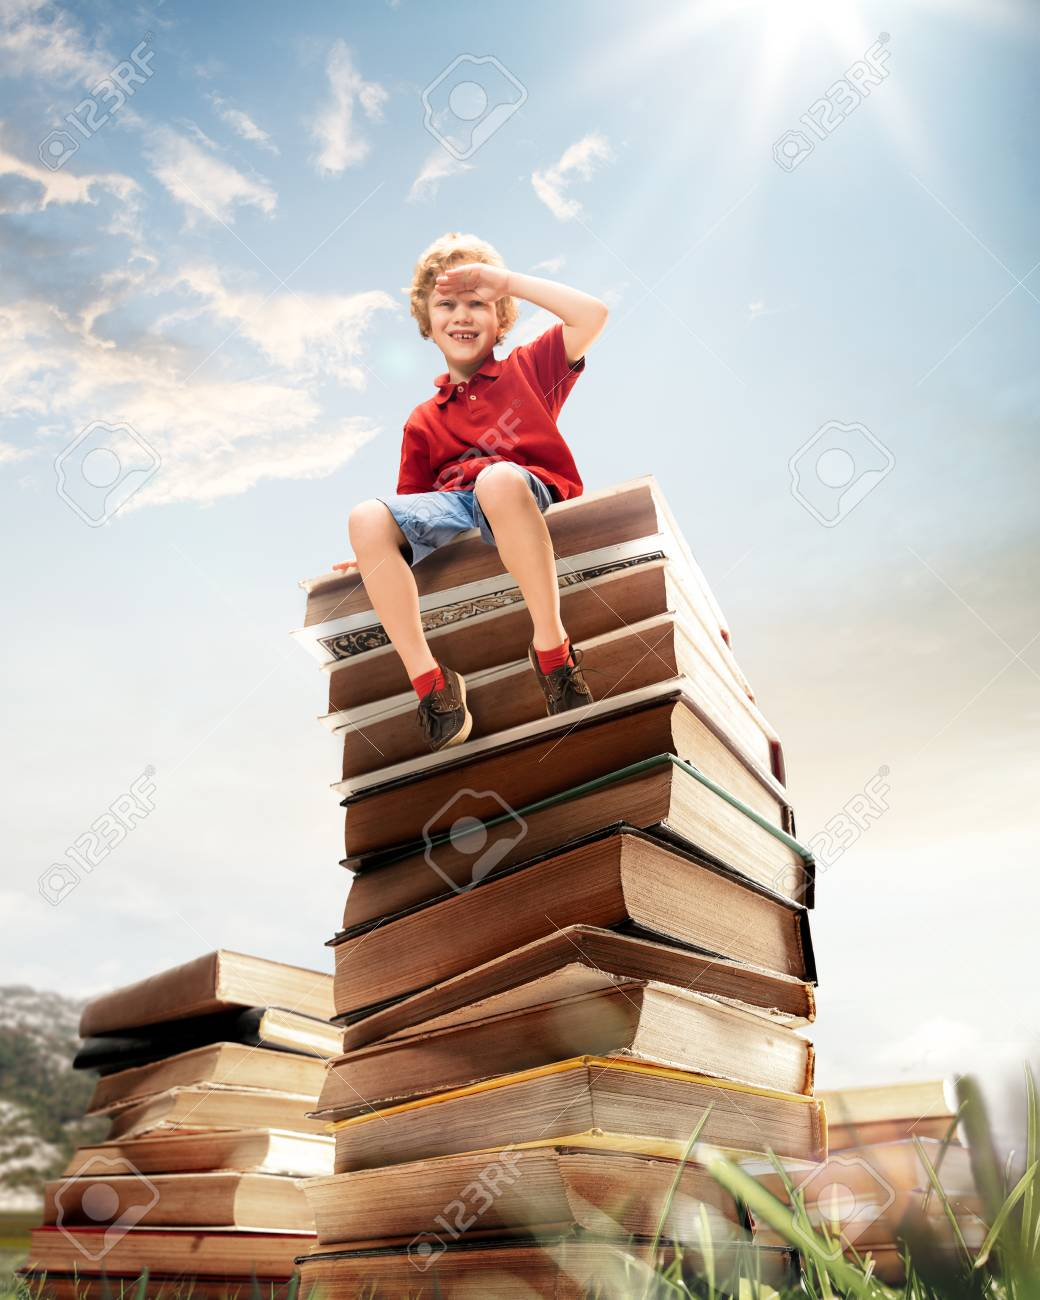 Little boy sitting on the tower made of big books. Childhood dreams, reading and education concept. Wondering world. abstract collage - 117841119